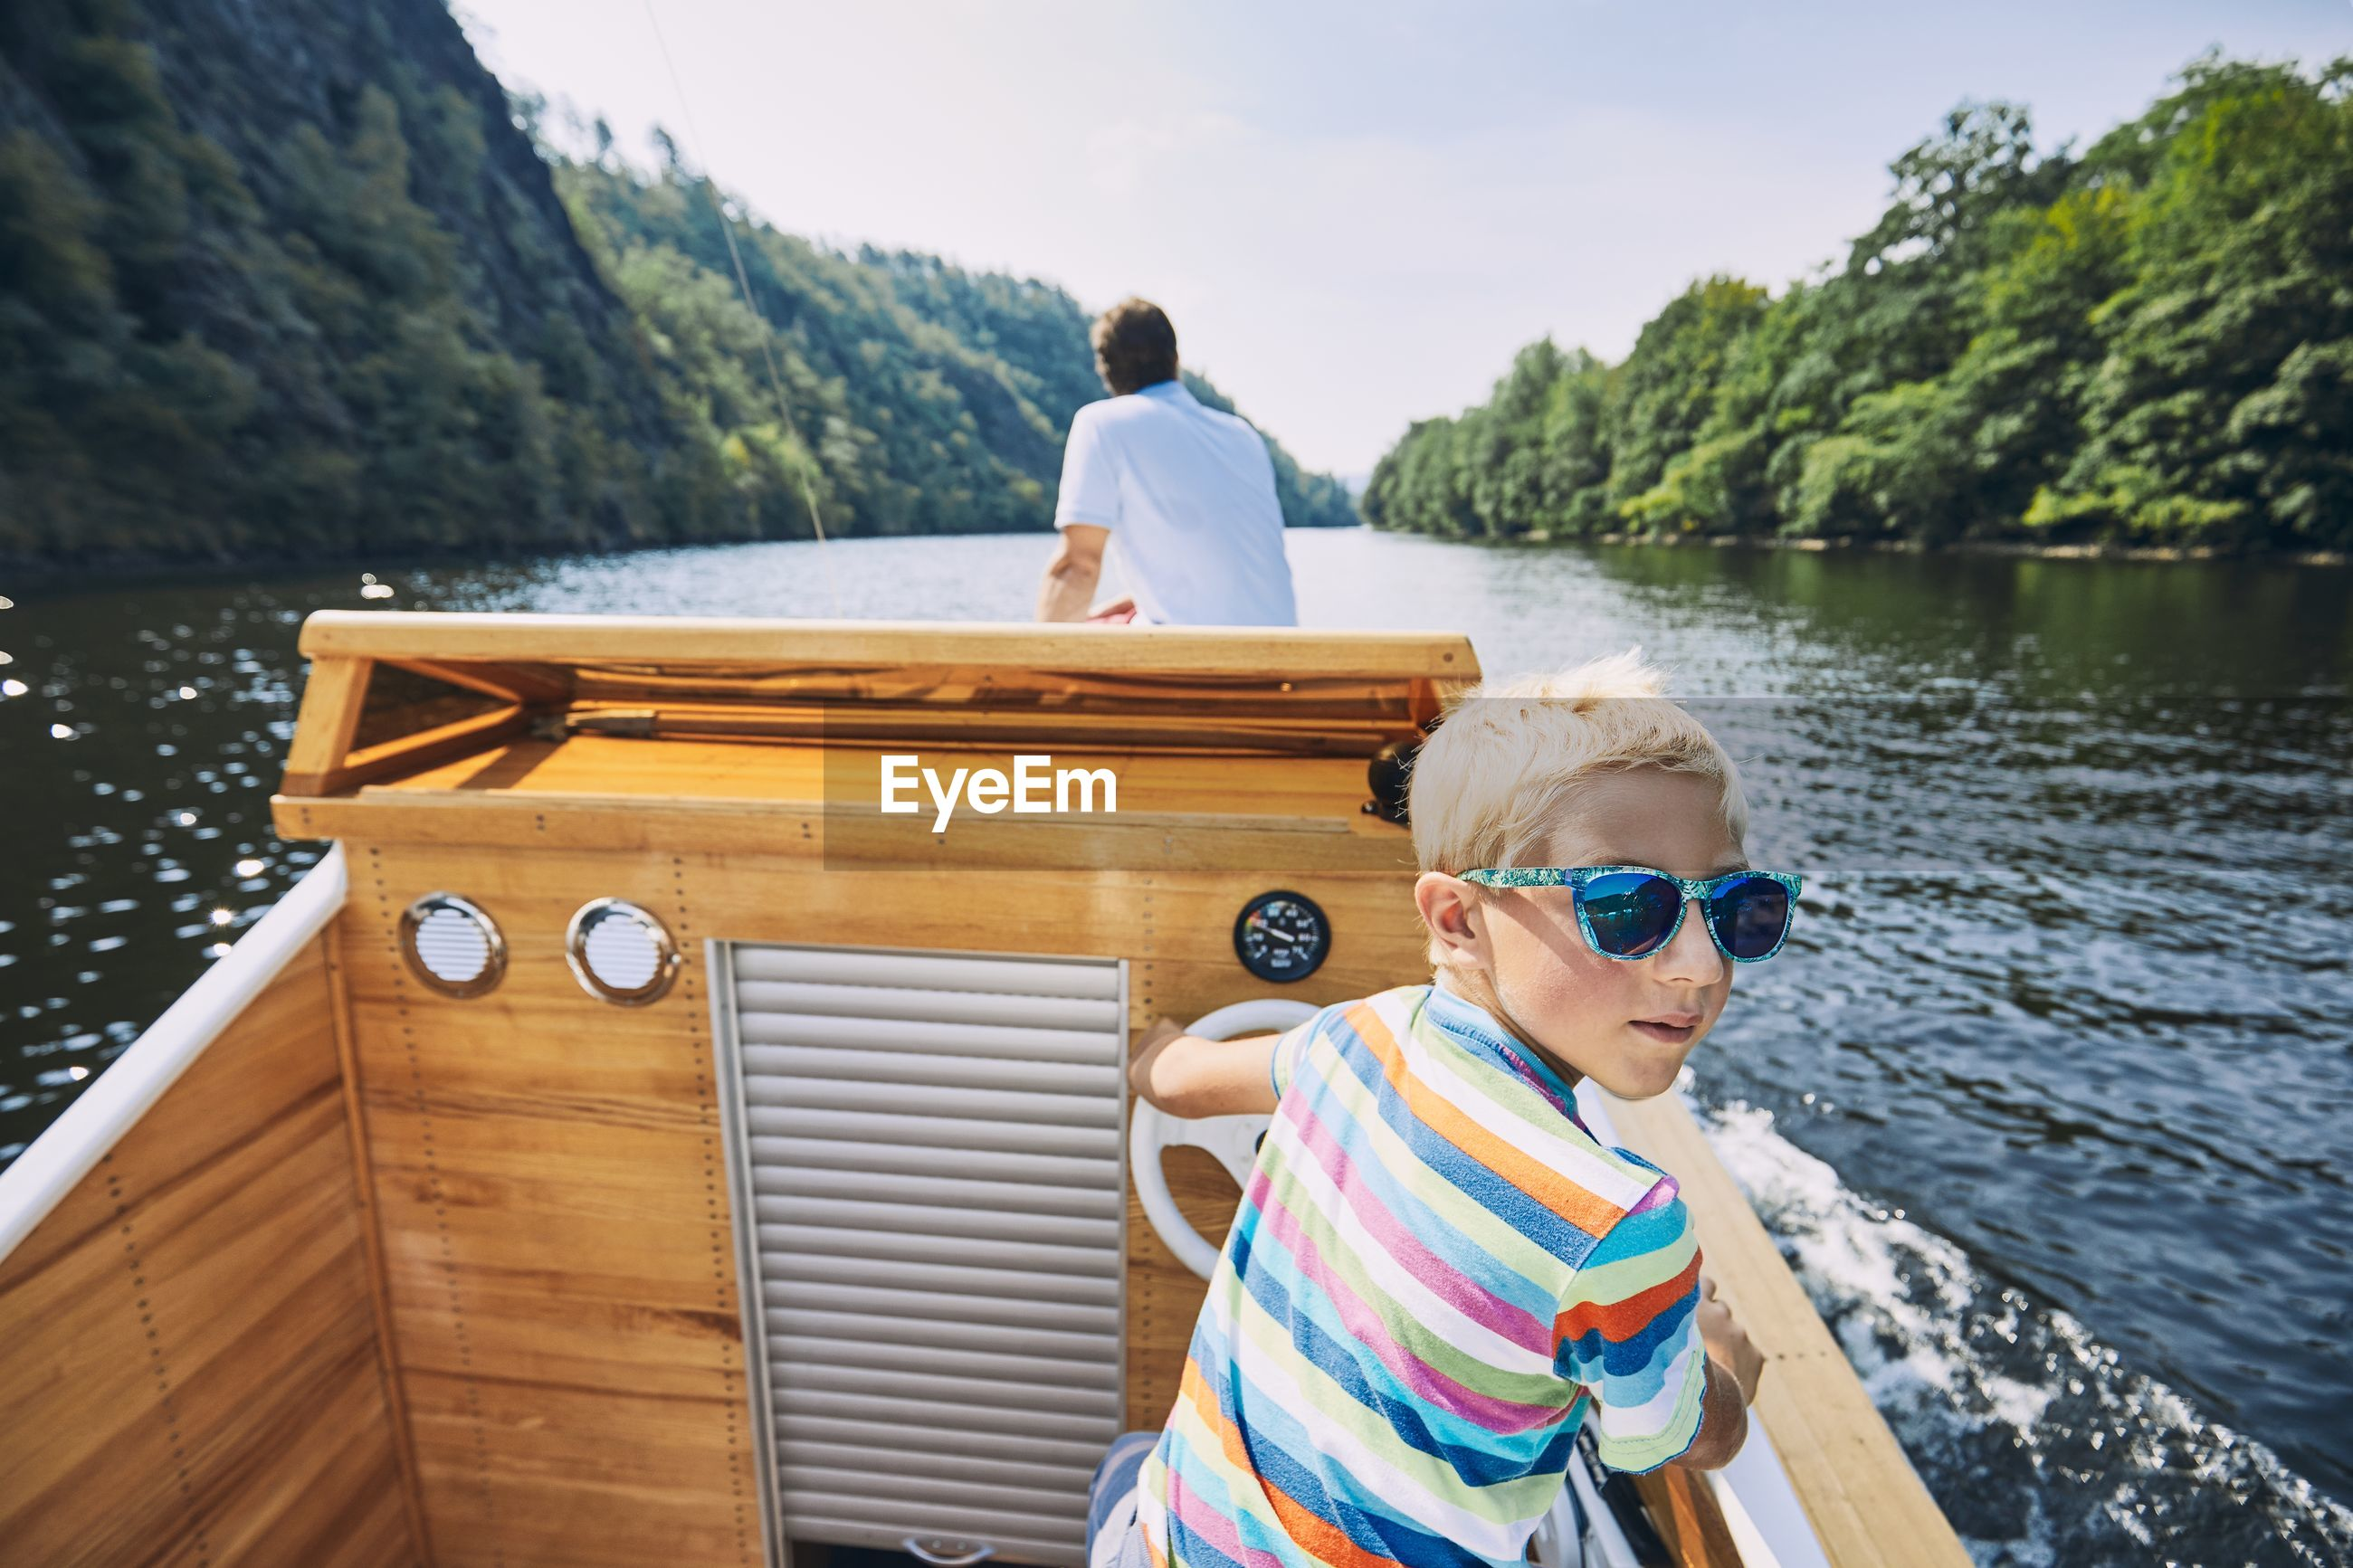 Portrait of boy wearing sunglasses on boat sailing in river